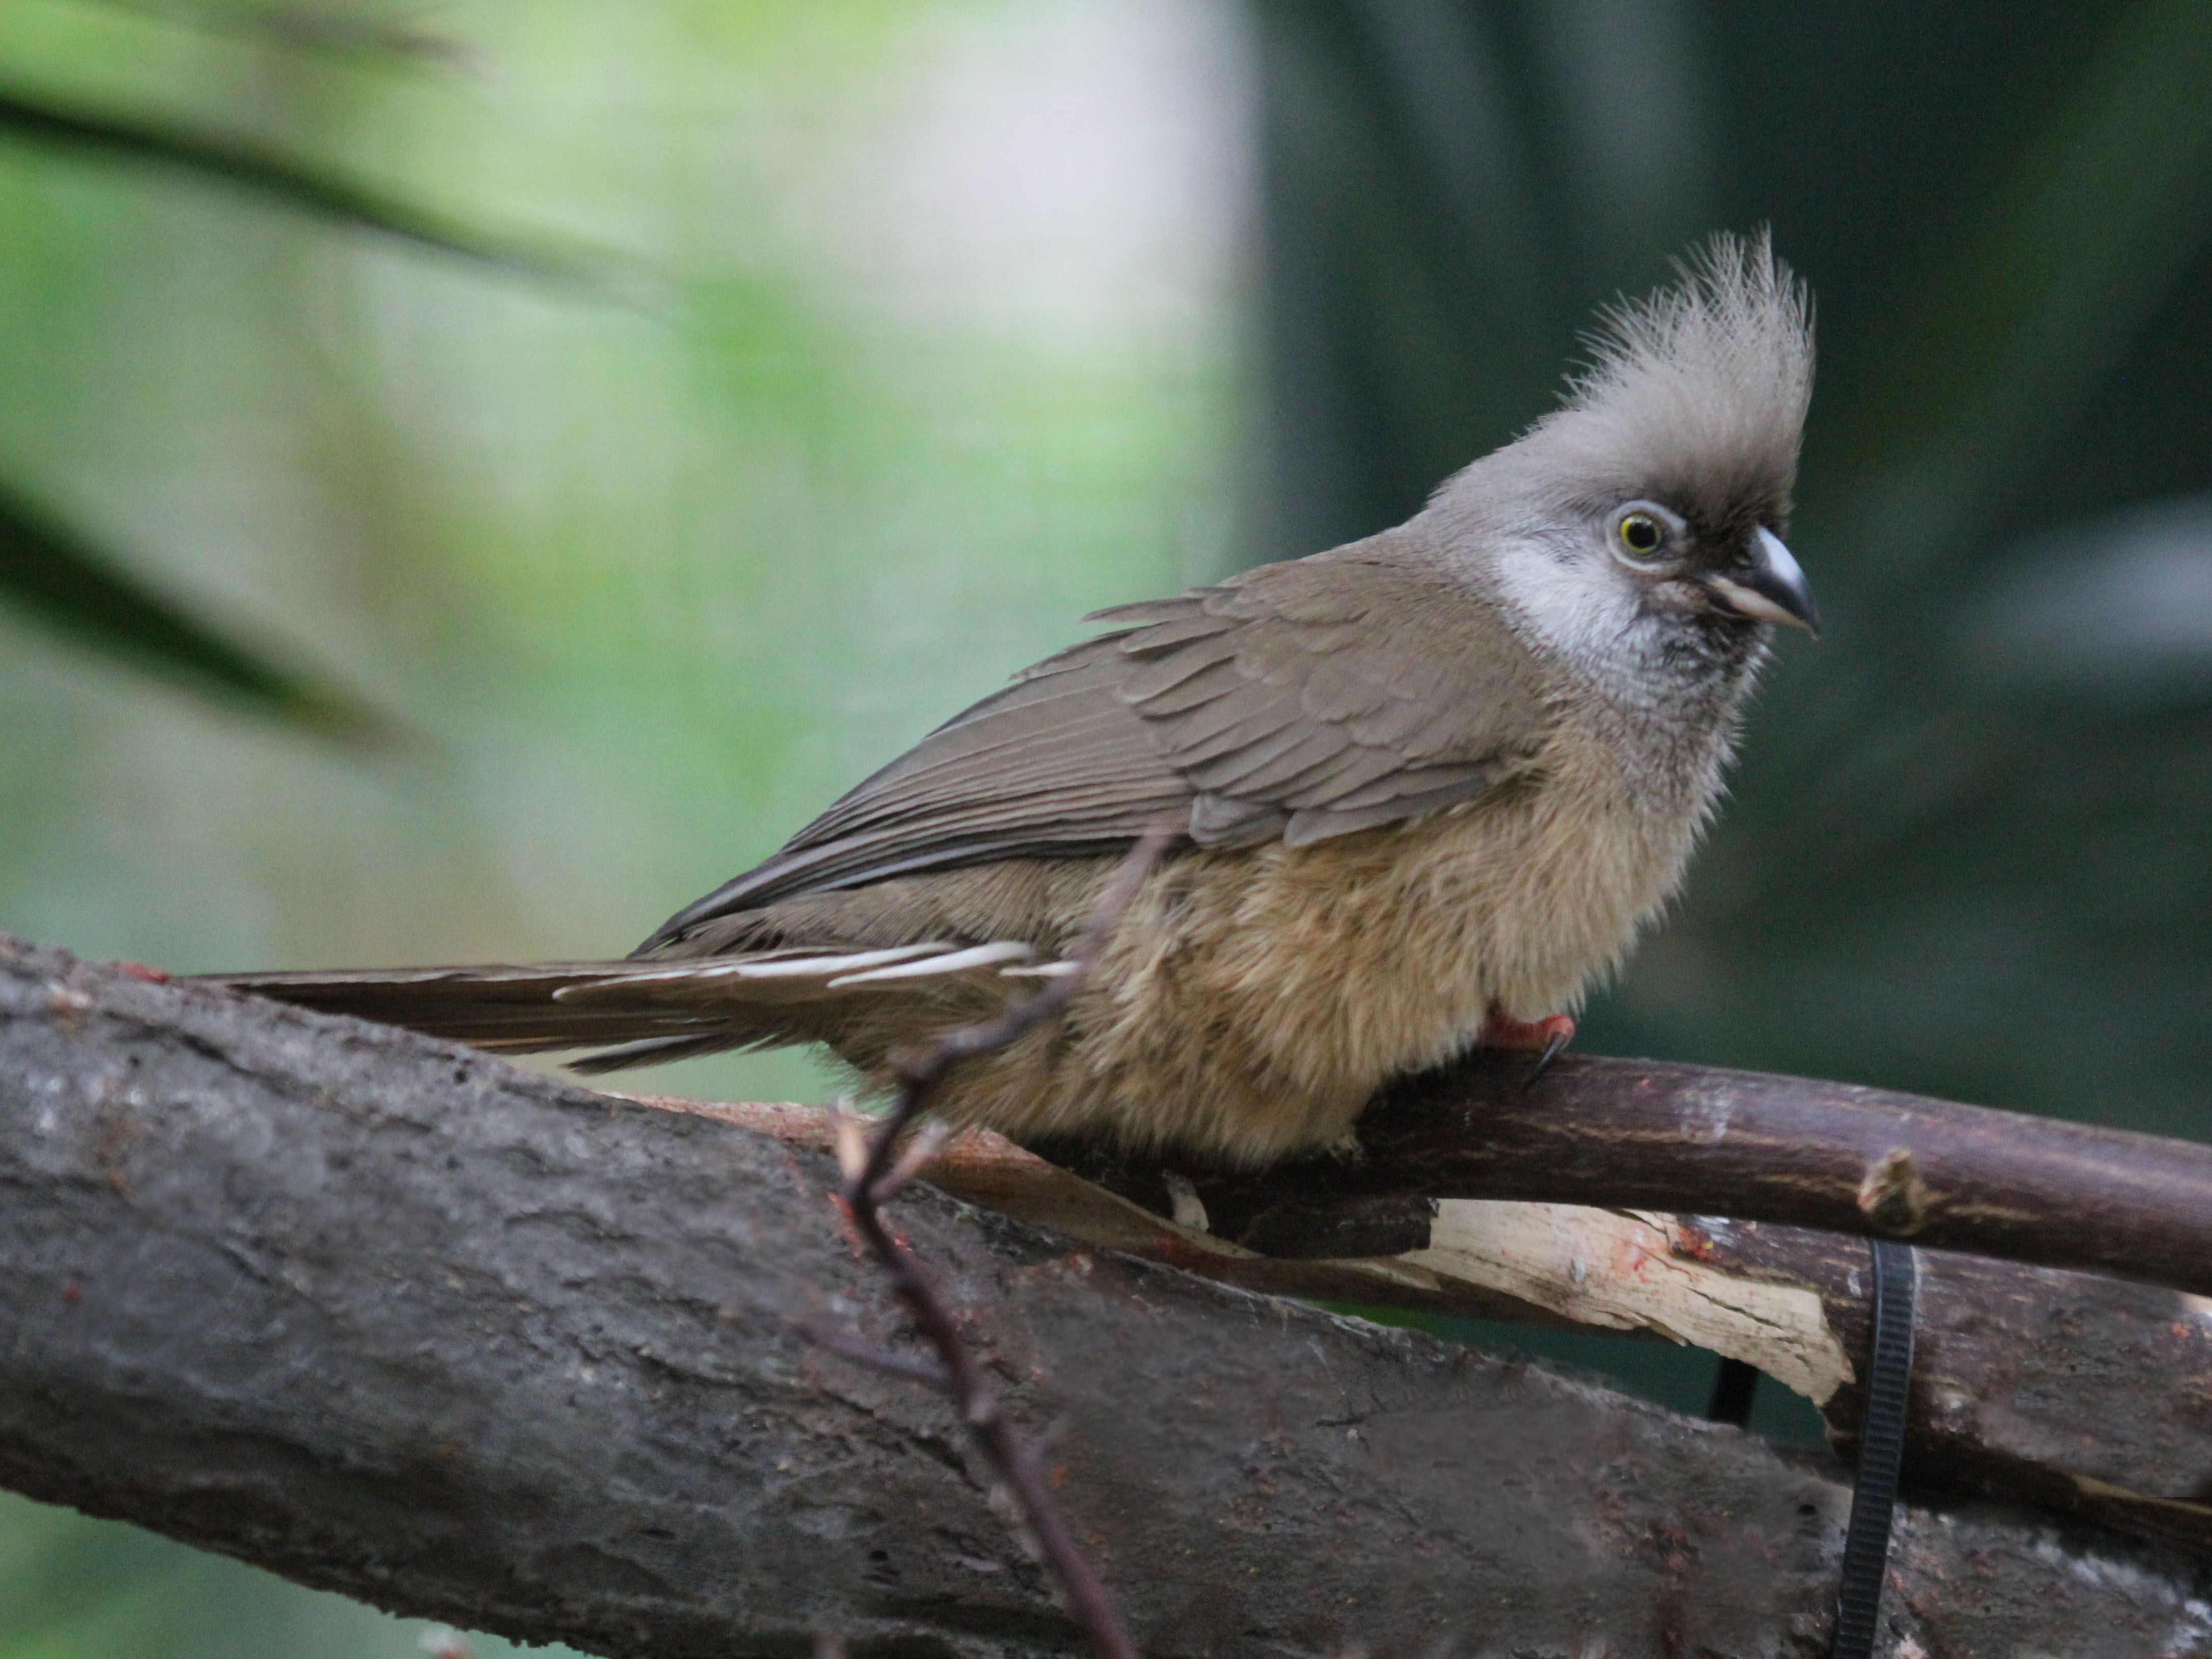 Speckled mousebird perched on a branch